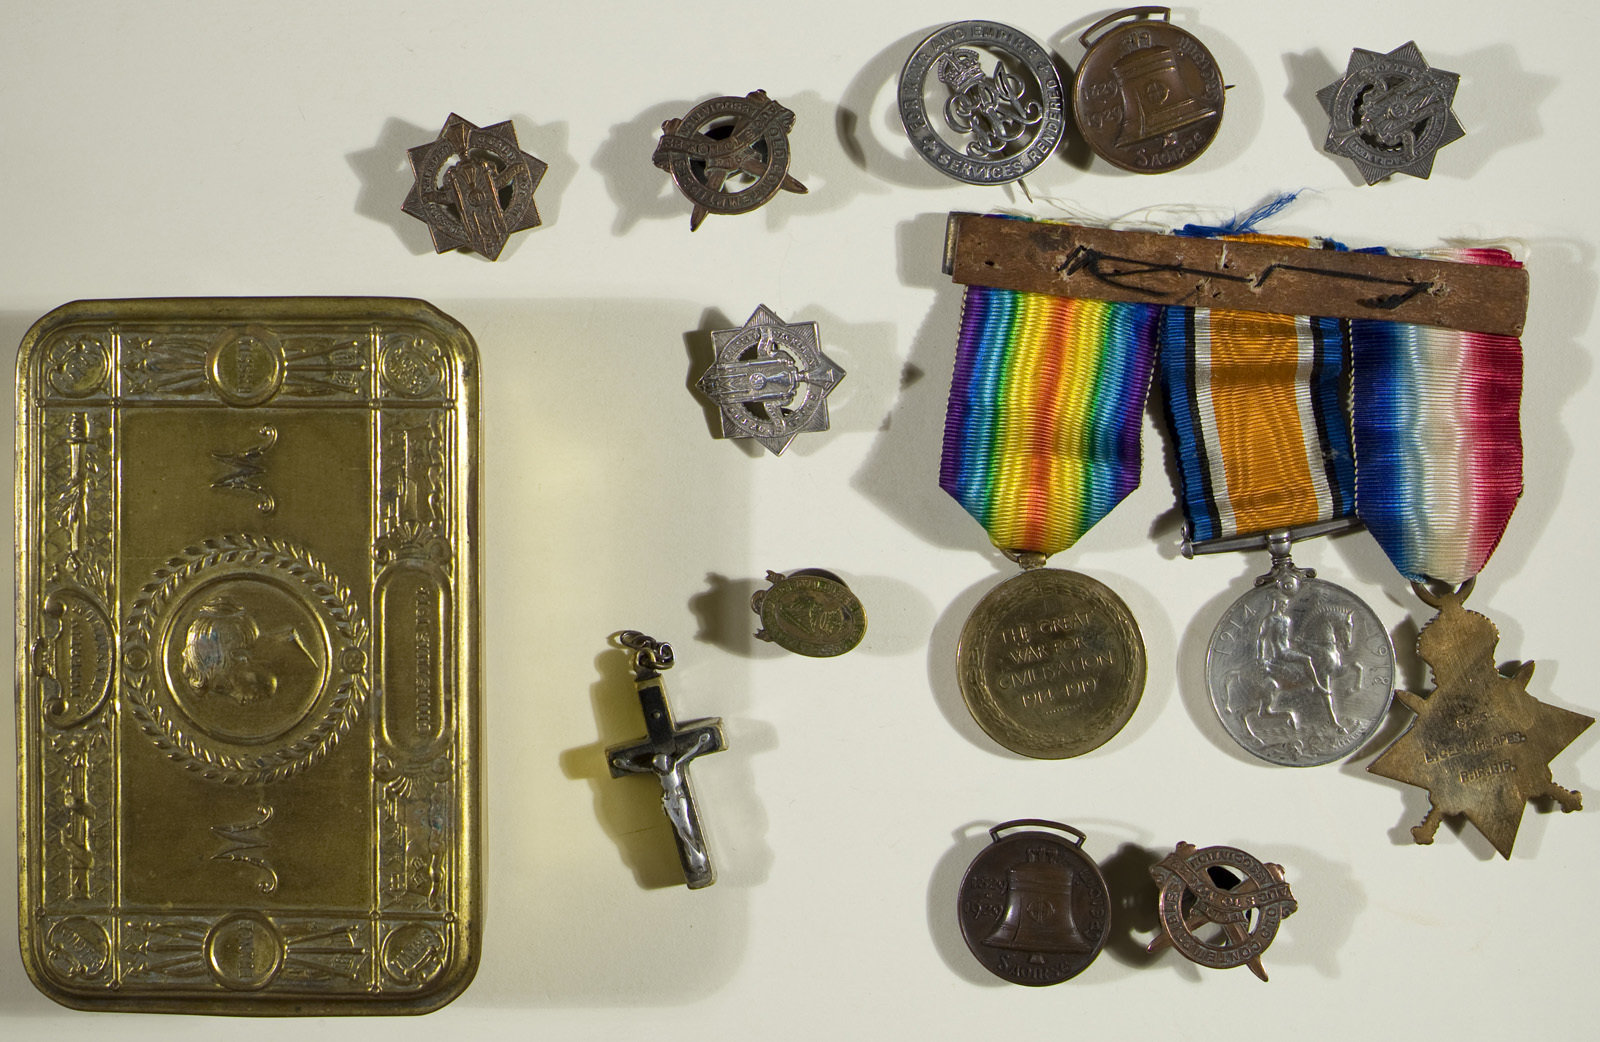 Medals of Joseph Heapes , the 1914-15 Star, British War Medal and the Victory Medal, Europeana 1914-1918 / Máire Uí Éafa, CC BY-SA